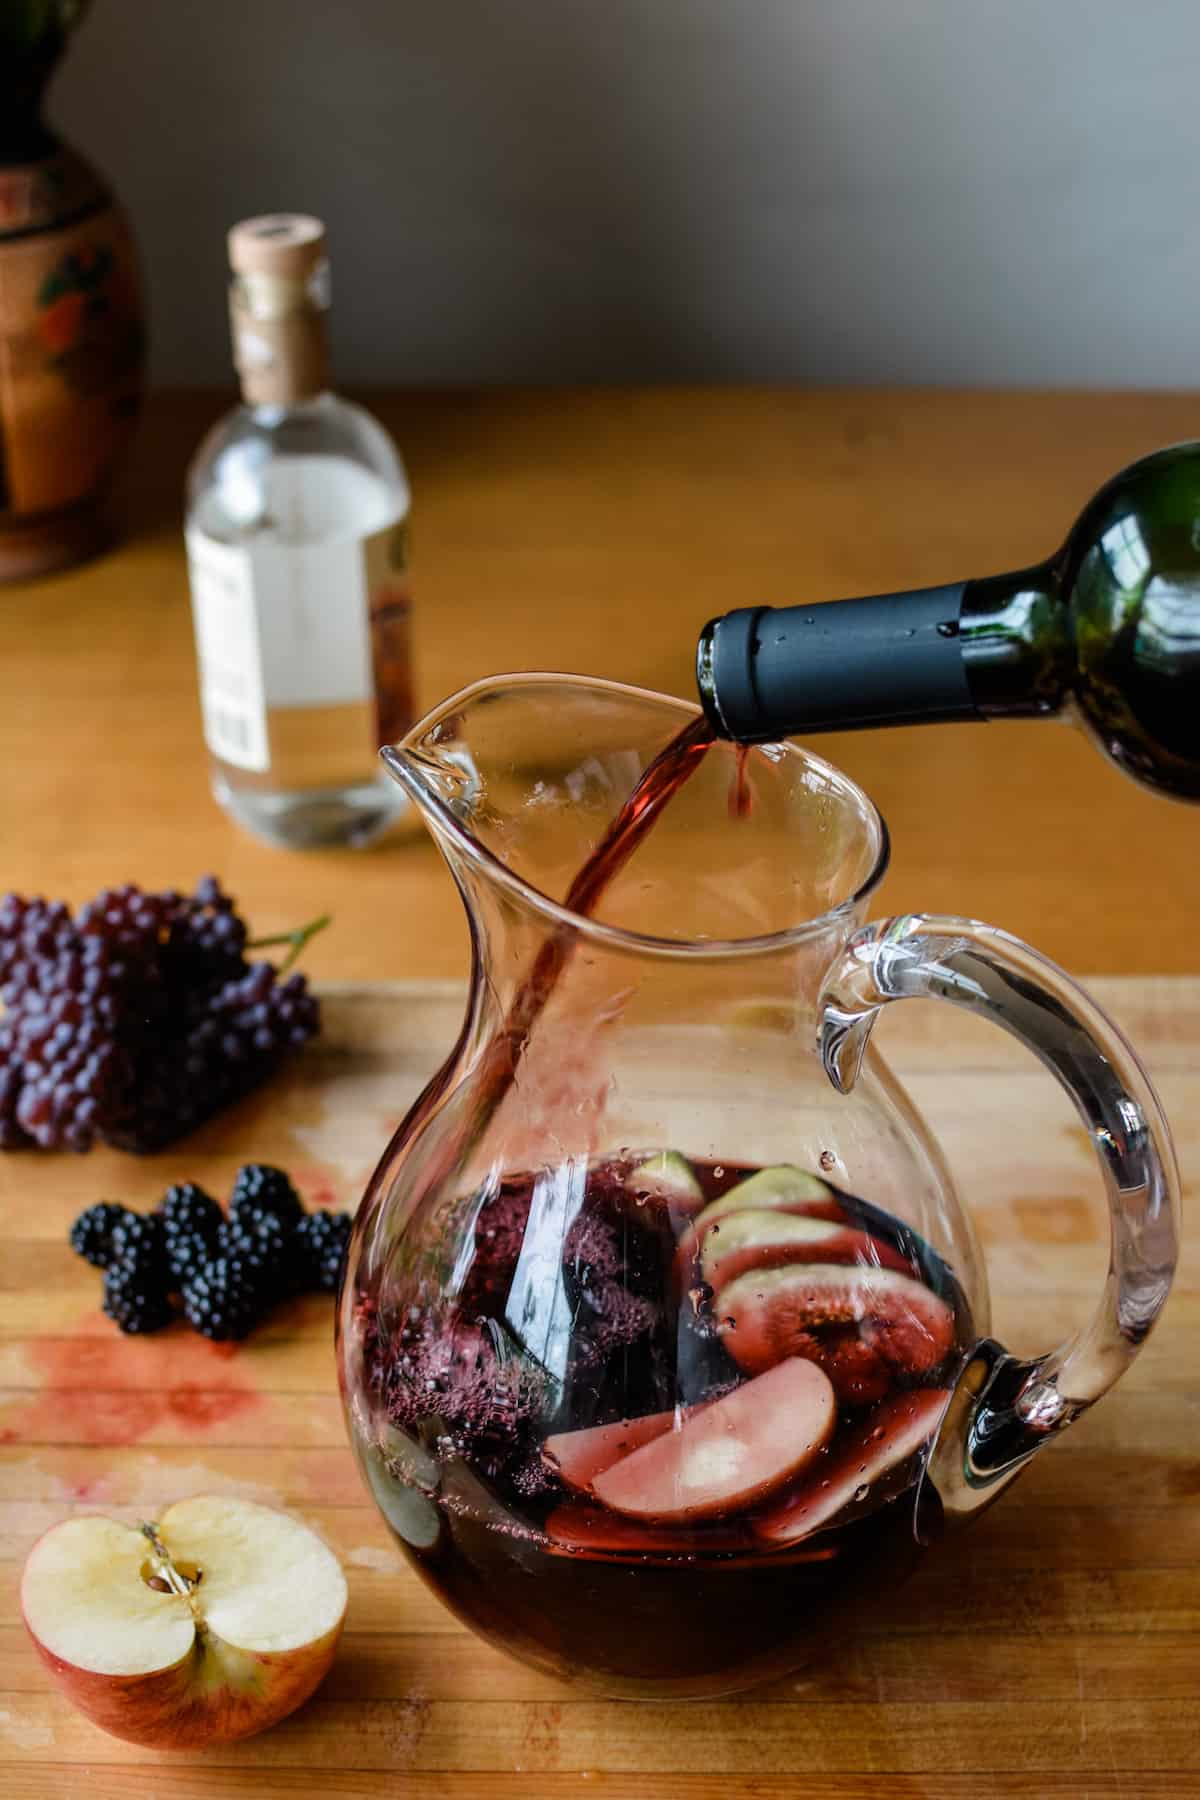 A pitcher with cut fruit in it and a bottle of red wine being poured into the pitcher.